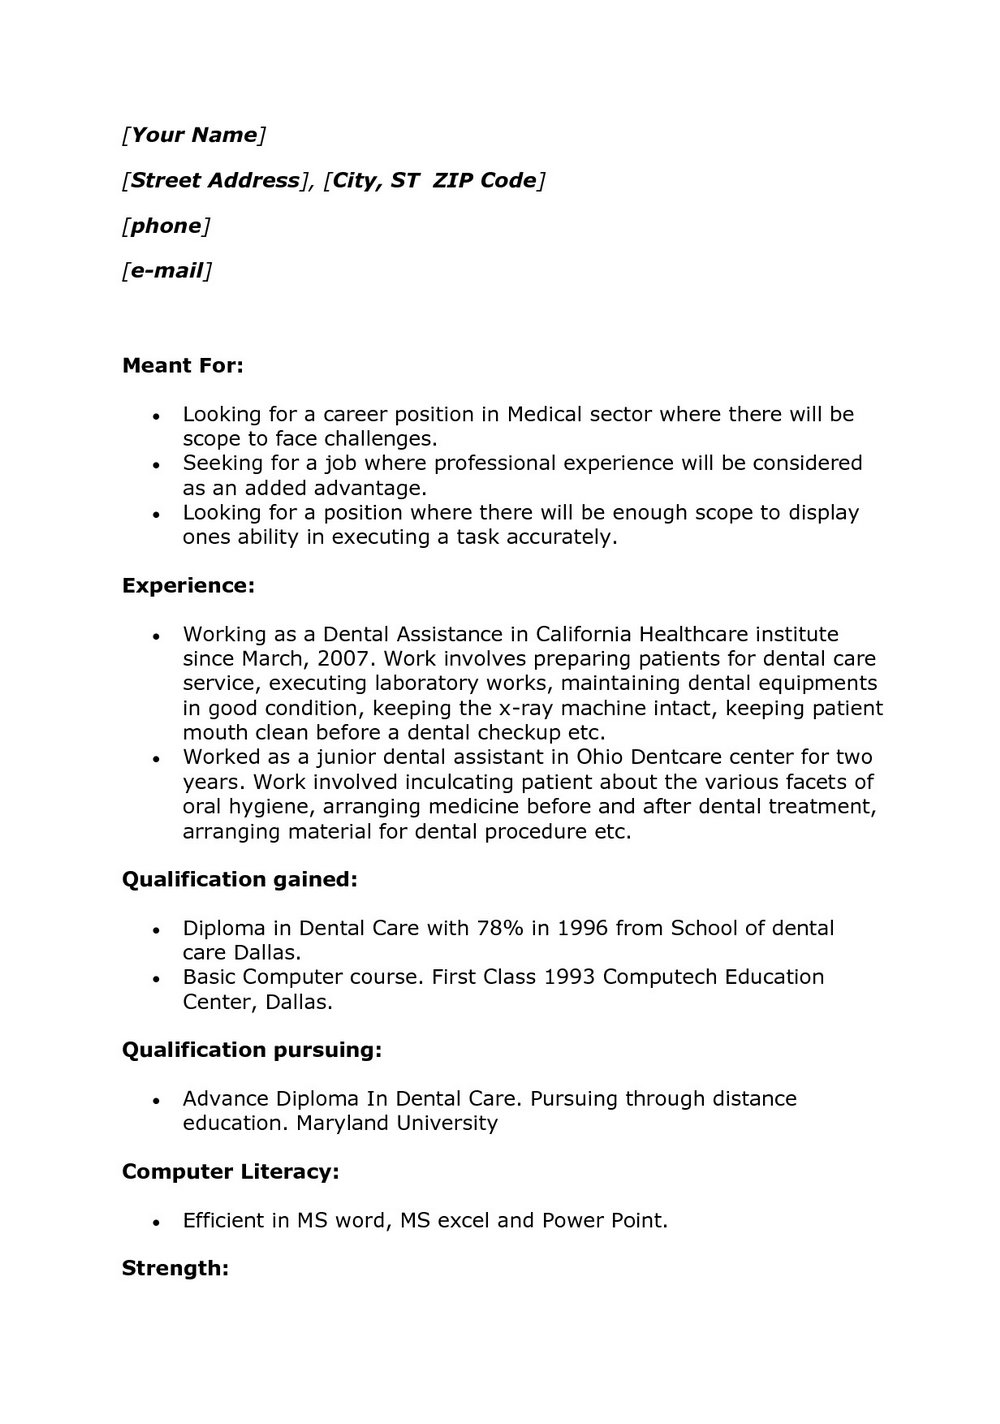 Resume For Dentist Job In India